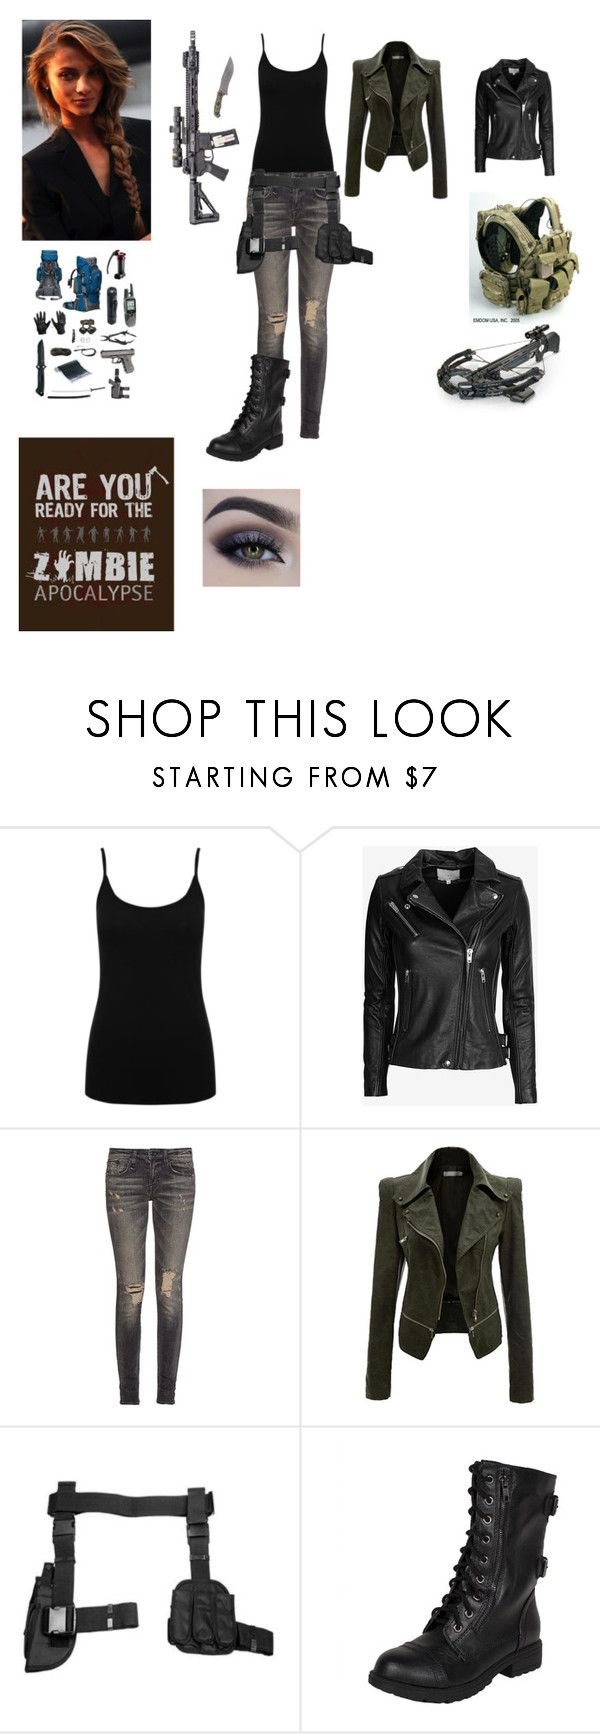 1000+ ideas about Zombie Apocalypse Outfit on Pinterest | Emo outfits Outfits and Polyvore